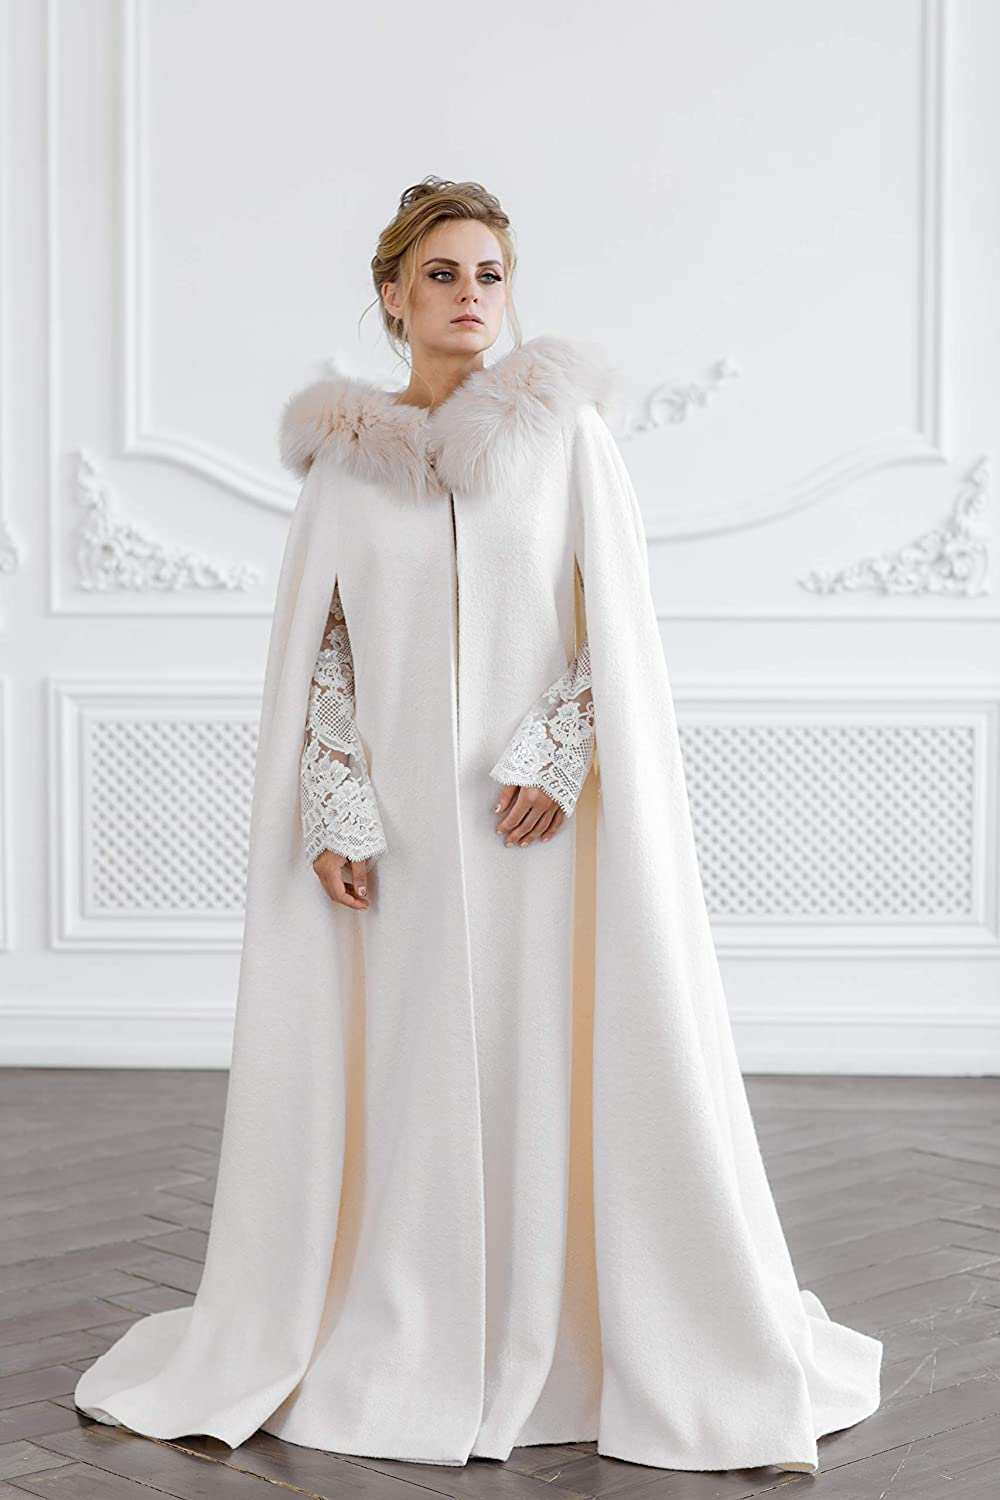 Safety and trust Wedding coat Animer and price revision Bridal jacket Fu